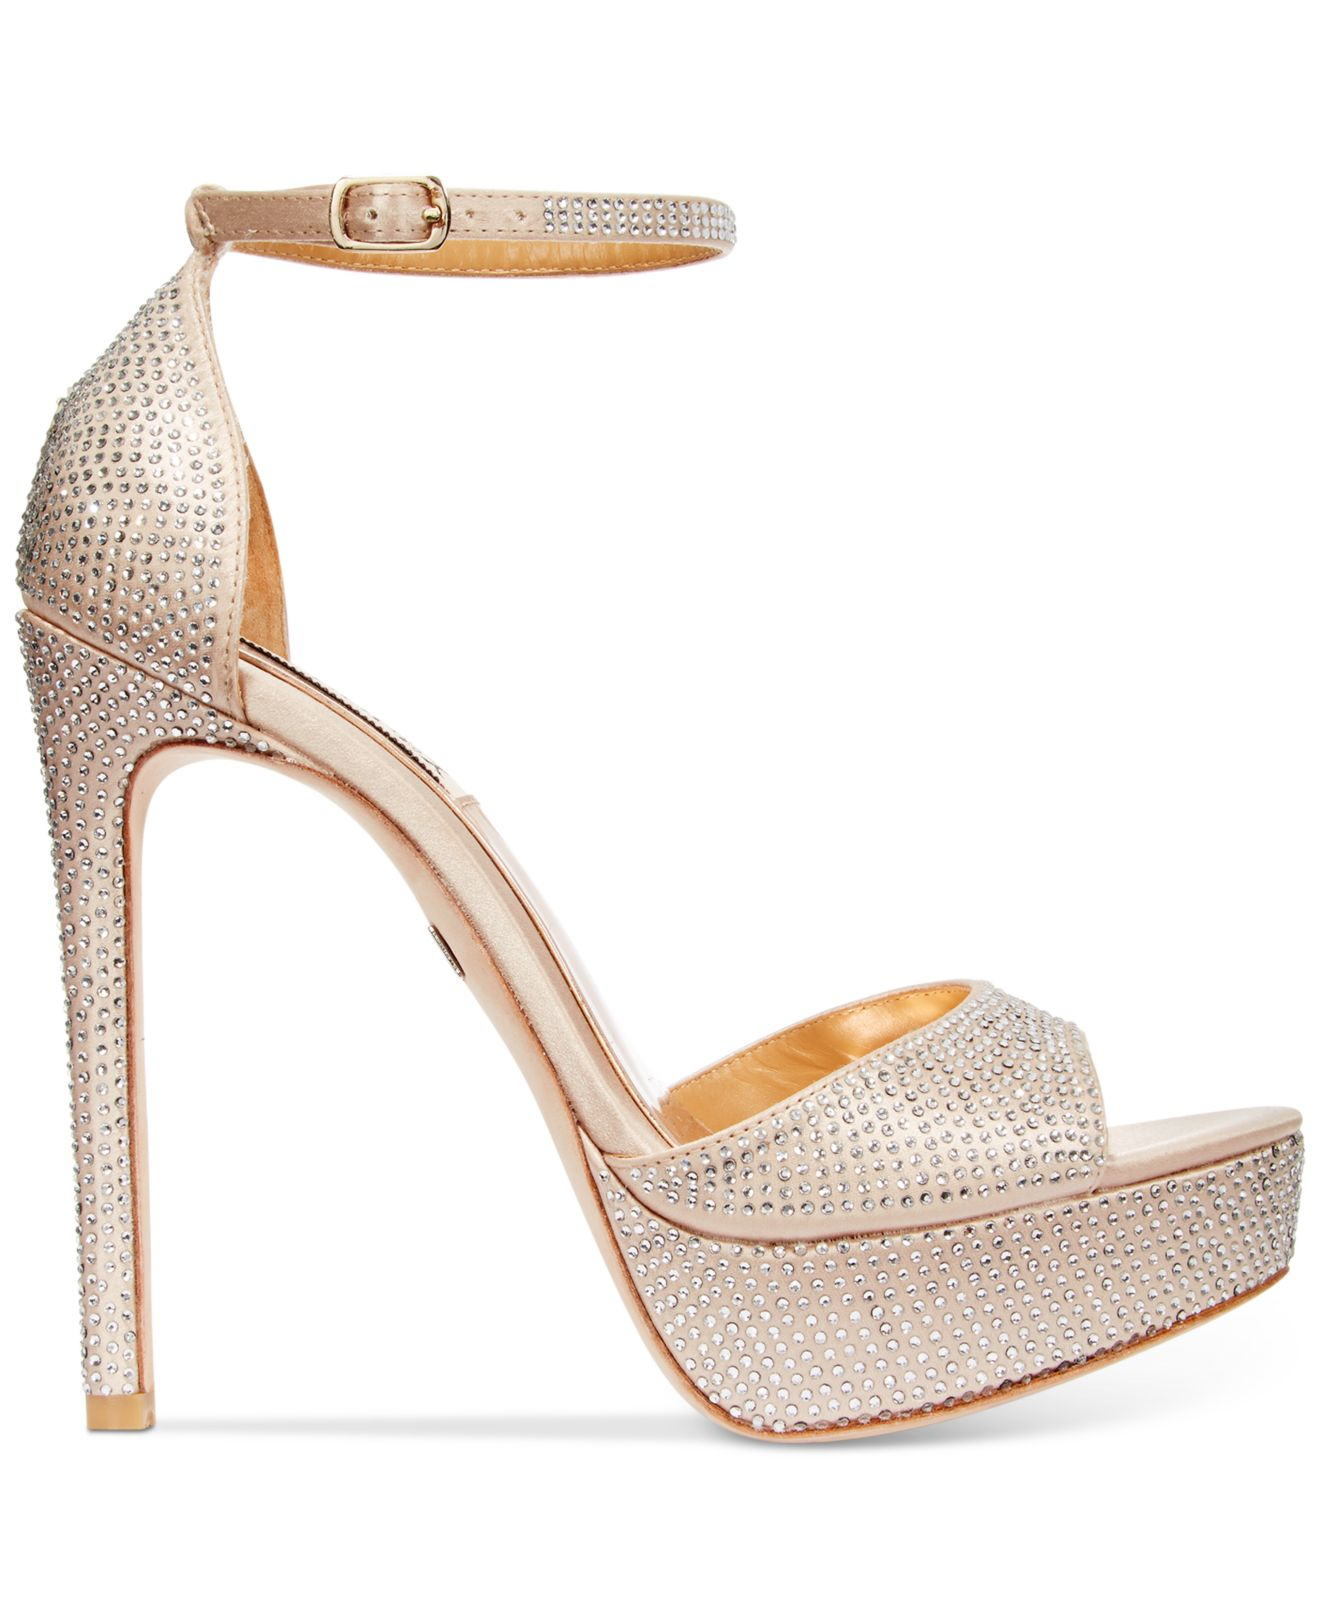 Badgley mischka Retro Ii Evening Sandals in Natural | Lyst